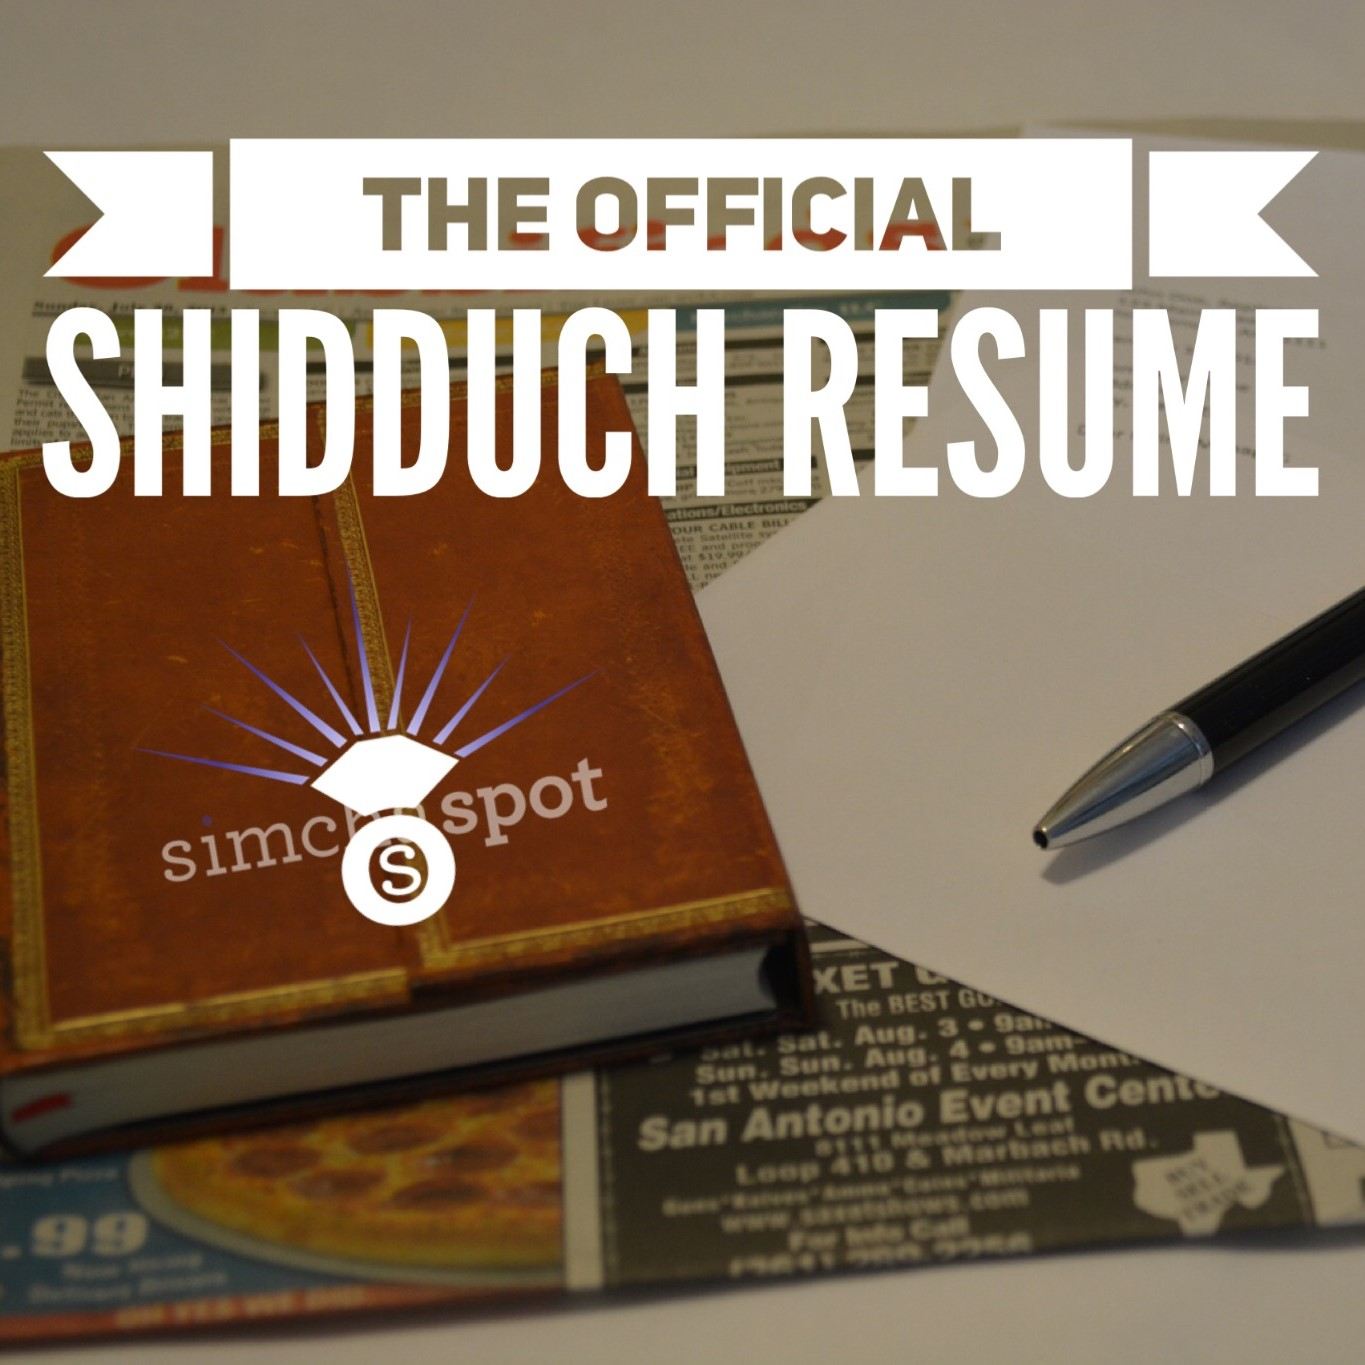 the official shidduch resume